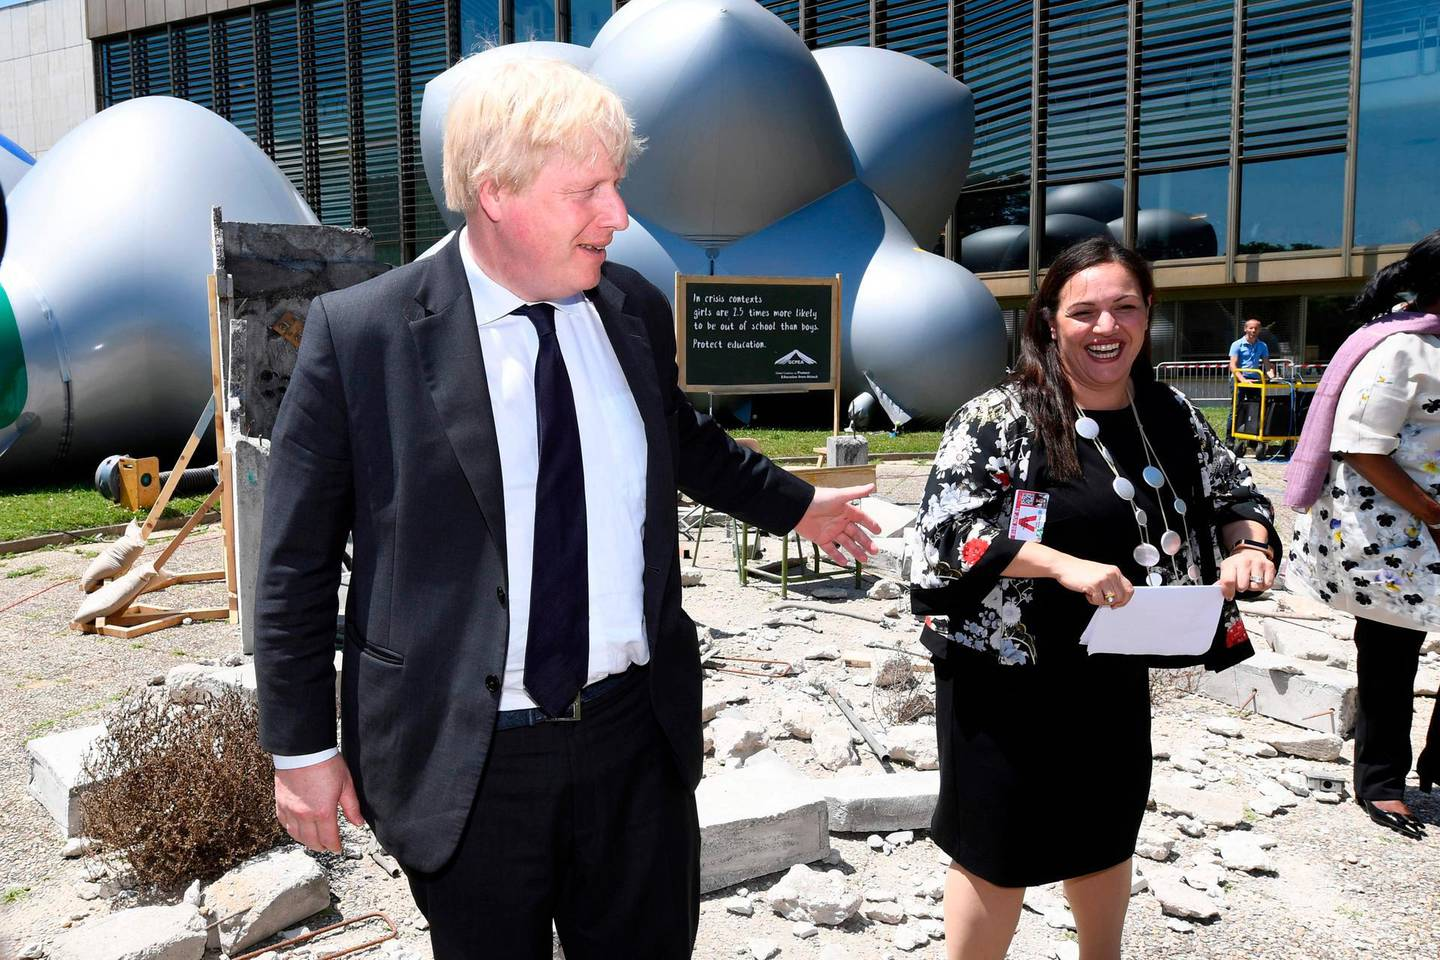 British Foreign Secretary Boris Johnson (L) and British 2018 Global Teacher Prize winner Andria Zafirakou visit the opening of an exhibition on girls' education involving a large temporary arts structure and a damaged classroom in the grounds of the Palais des Nations after addresses the 38th session of the United Nations (UN) Human Rights Council on June 18, 2018 in Geneva. / AFP / ALAIN GROSCLAUDE